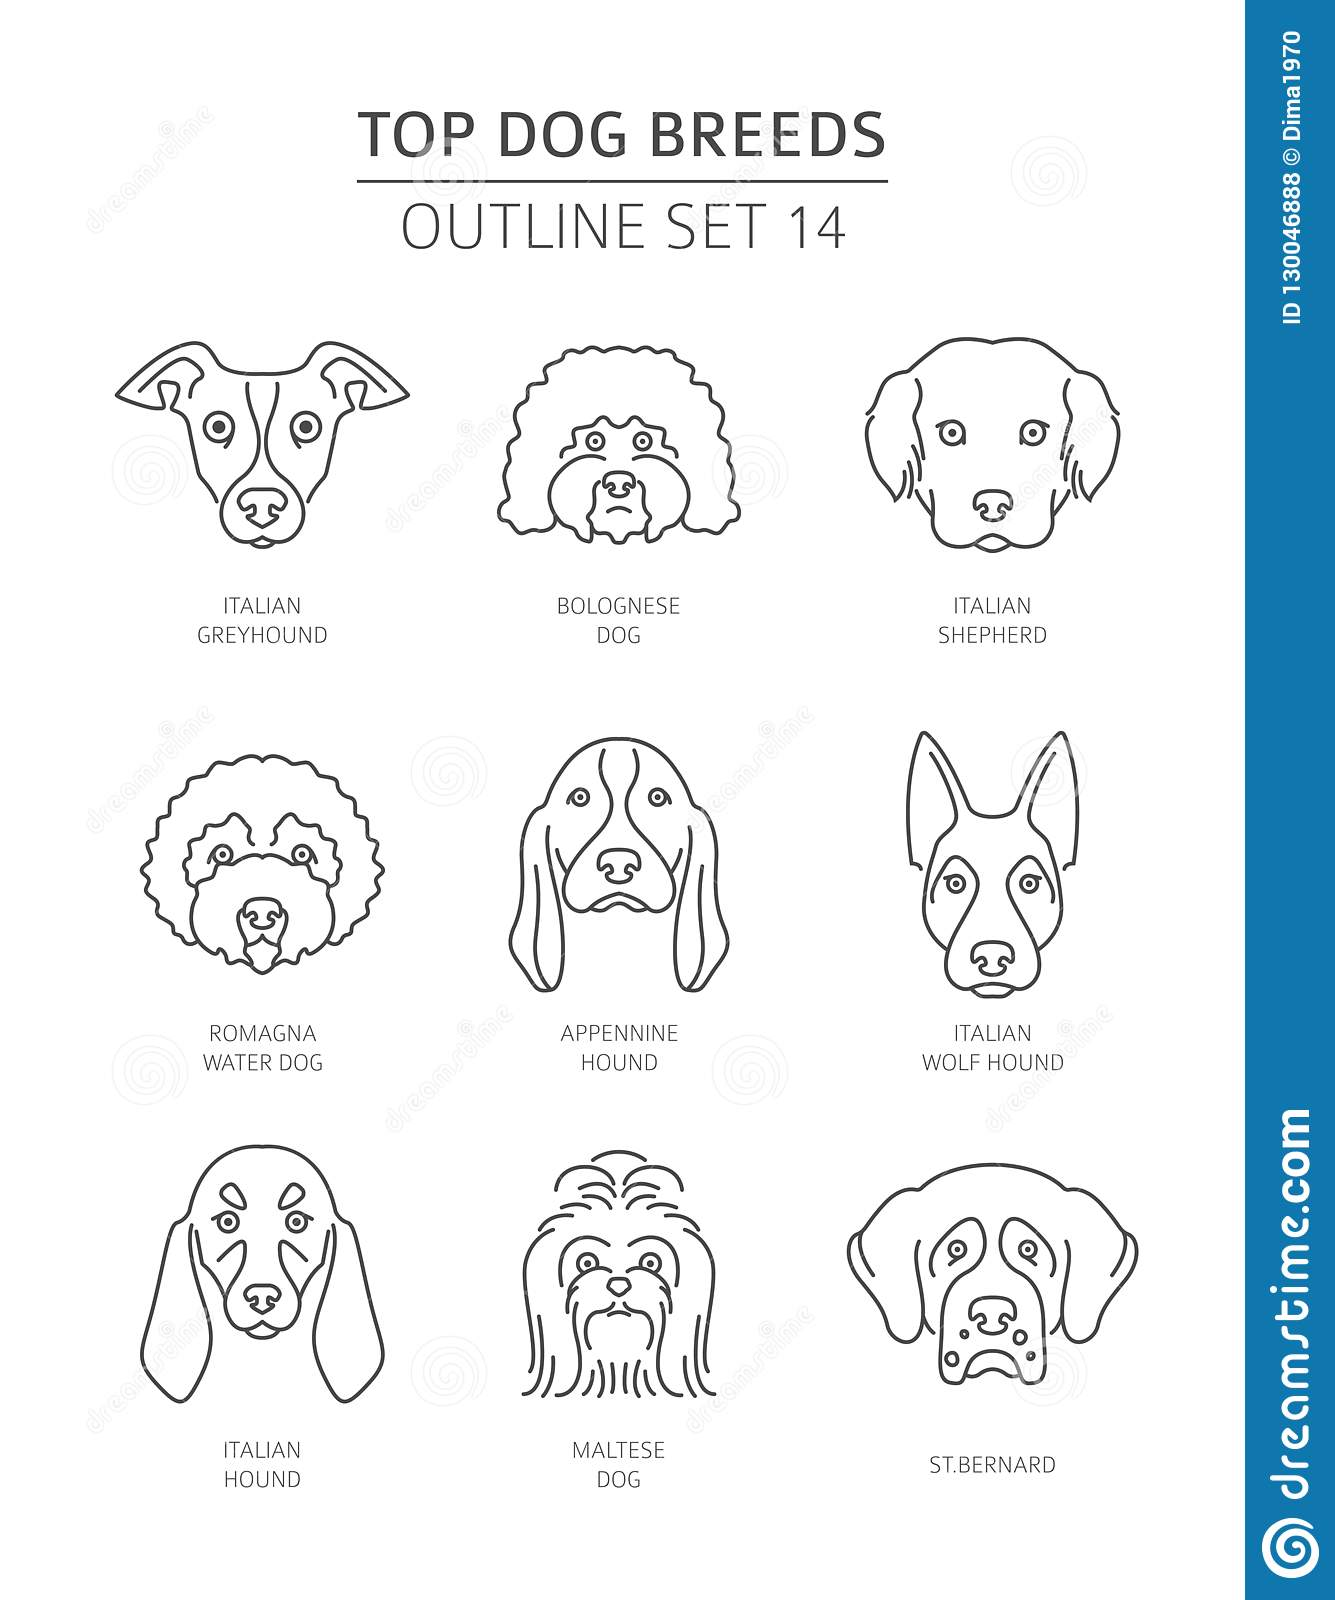 Top Dog Breeds Pet Outline Collection Stock Vector Illustration Of Origin Breed 130046888